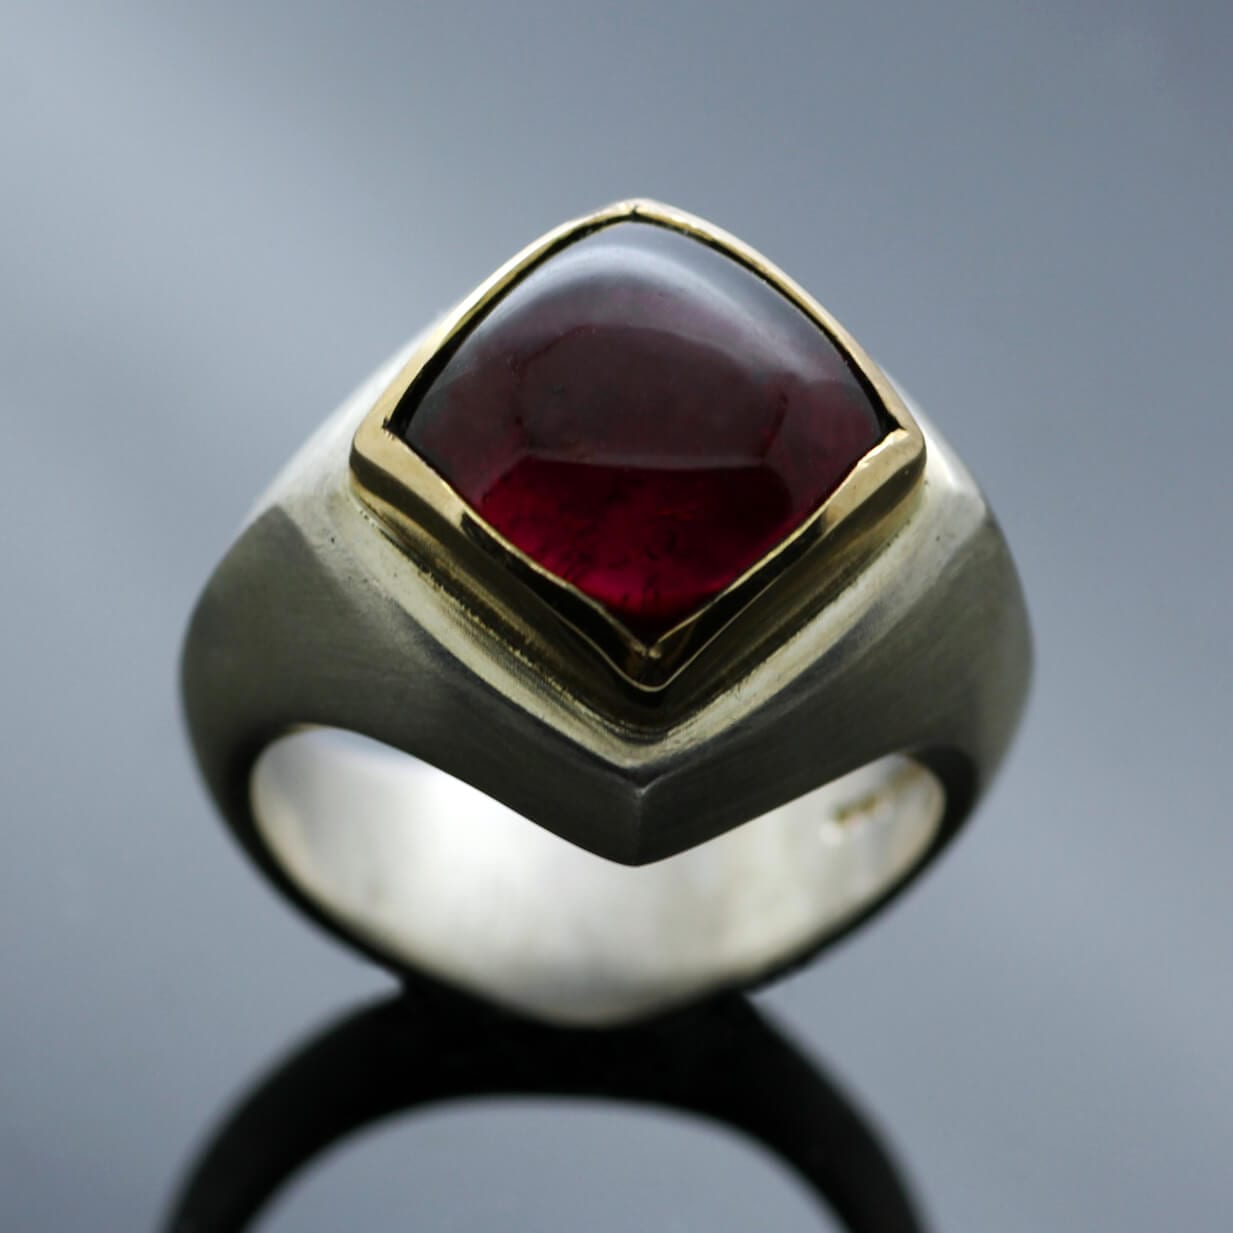 The Abbey Collection featuring contemporary Tourmaline gemstone rings